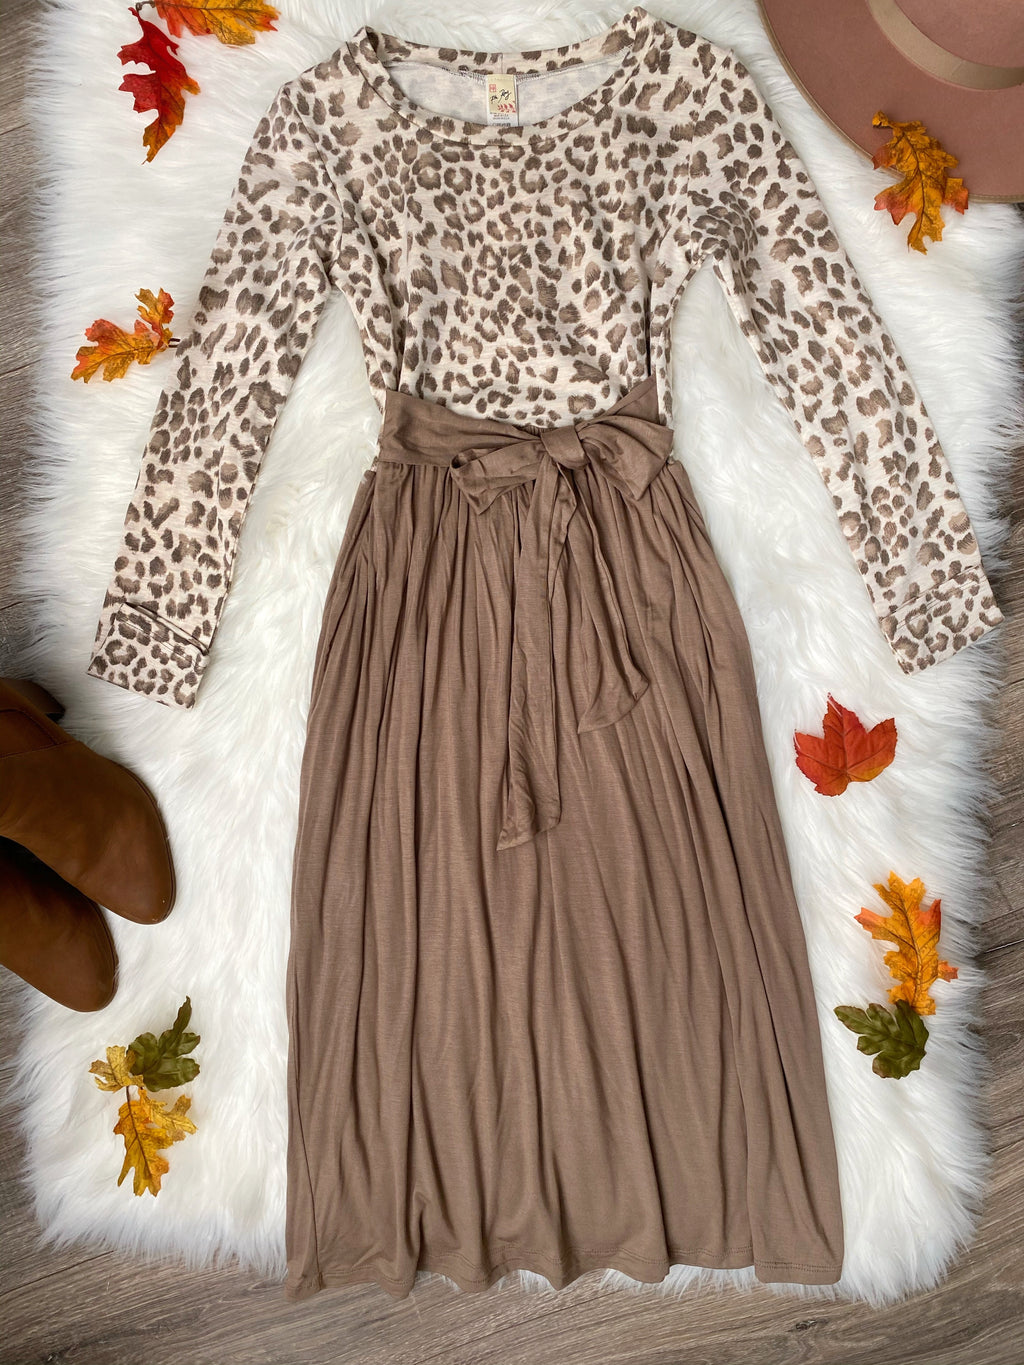 Animal Print Tie Dress in Mocha Latte